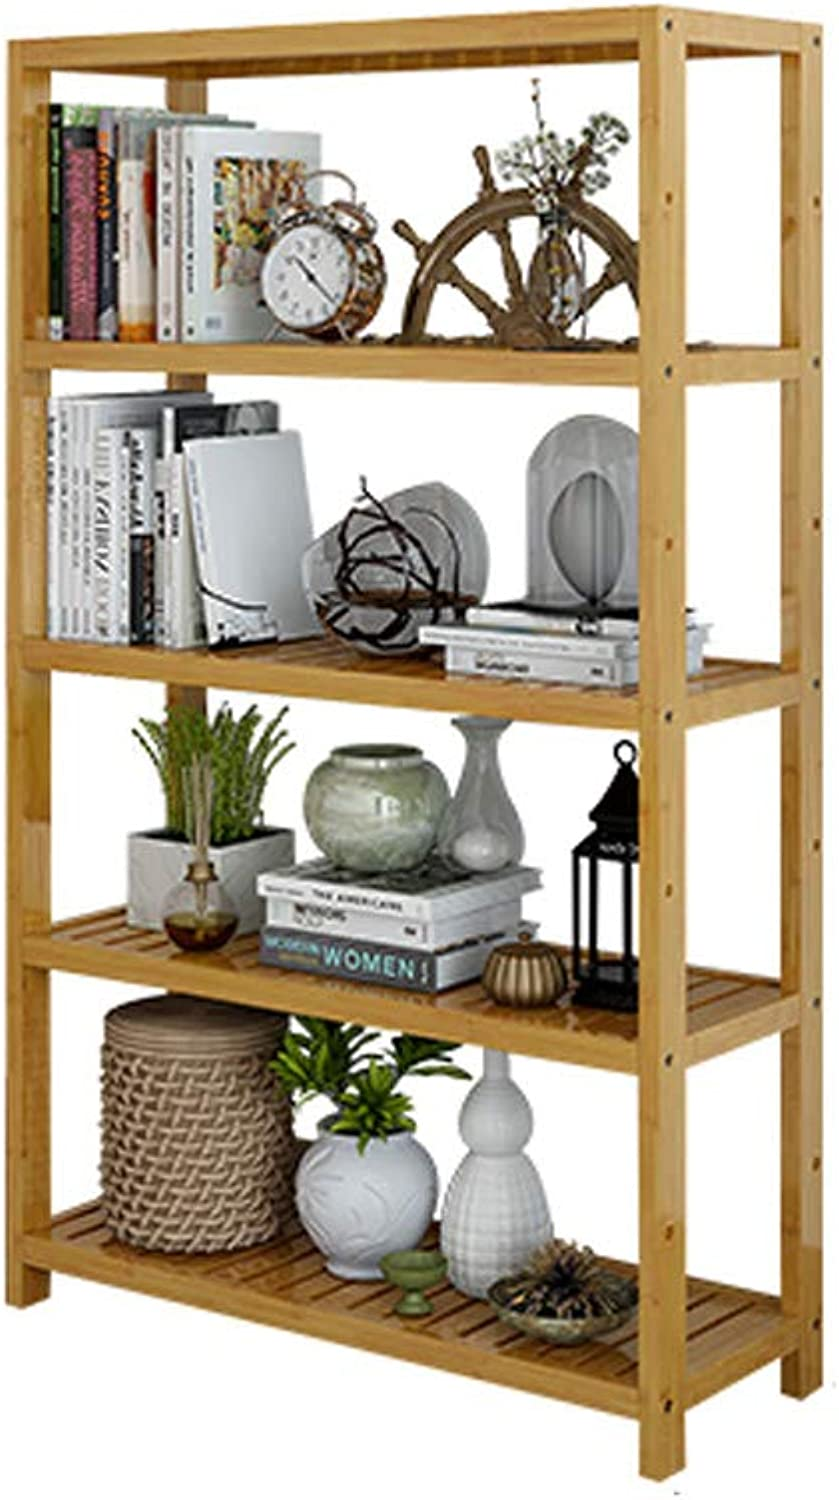 Solid Wood Bookshelf,Simple Floor-Standing Open Shelf Storage Rack Easy Assembly Multipurpose Display Rack for Home and Kitchen-B 52x29x130cm(20x11x51inch)